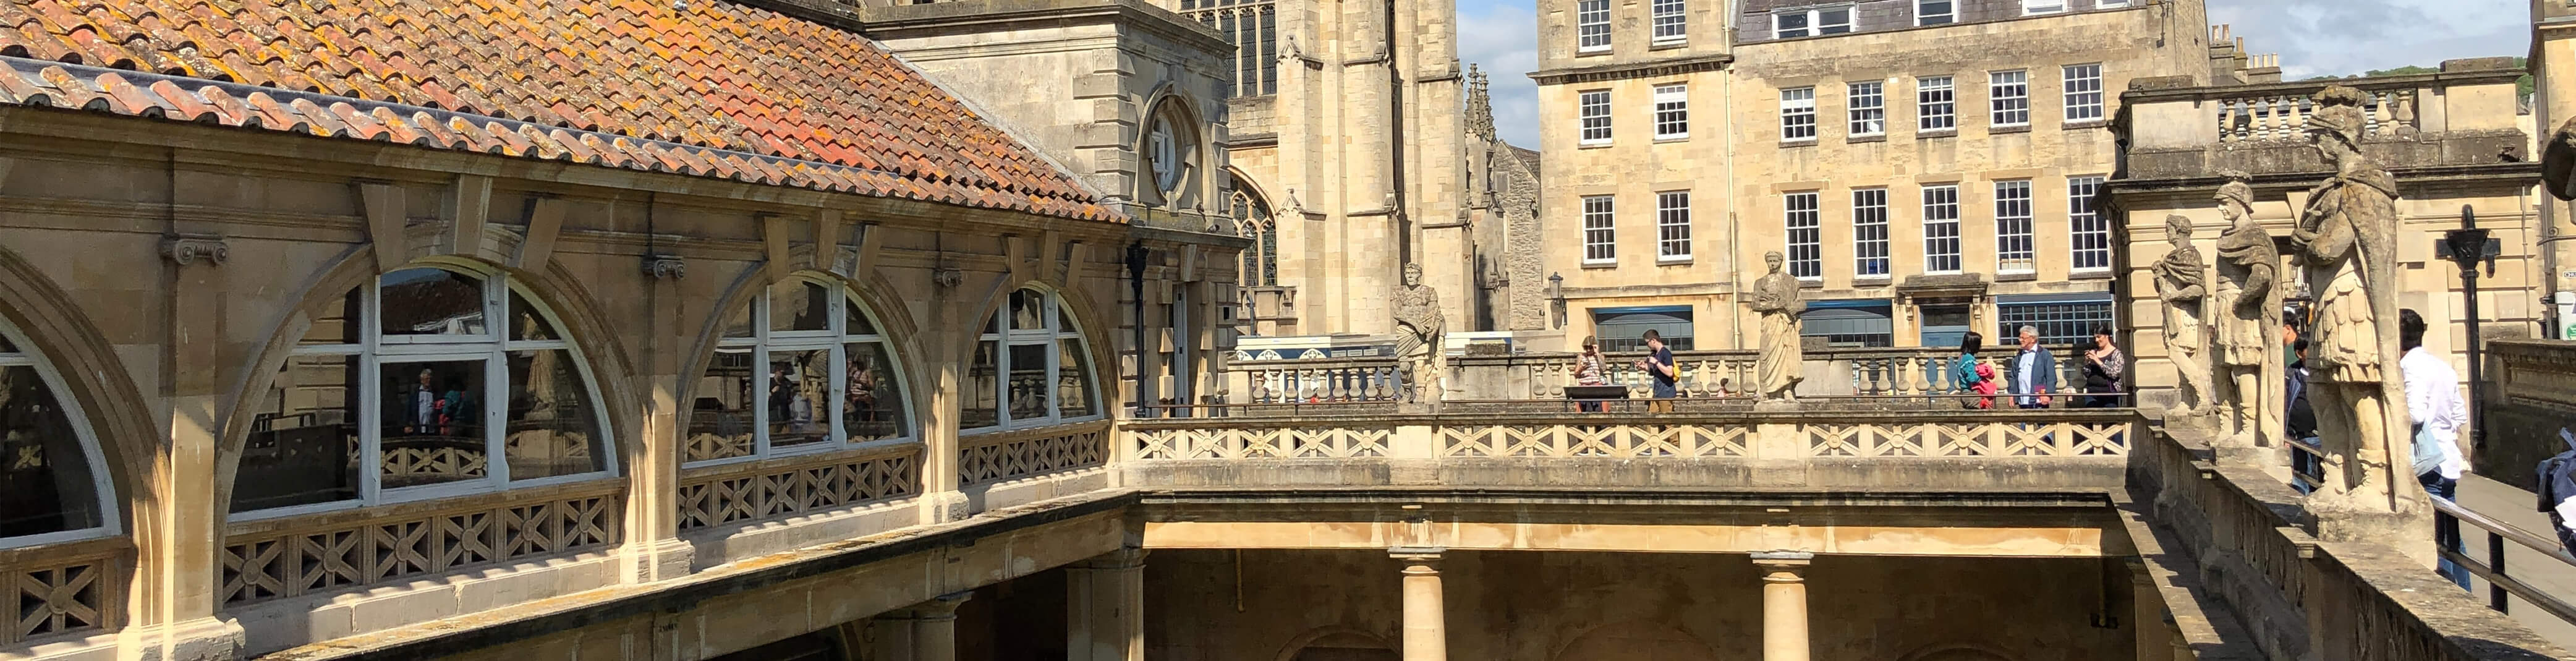 Online Training Courses In Bath